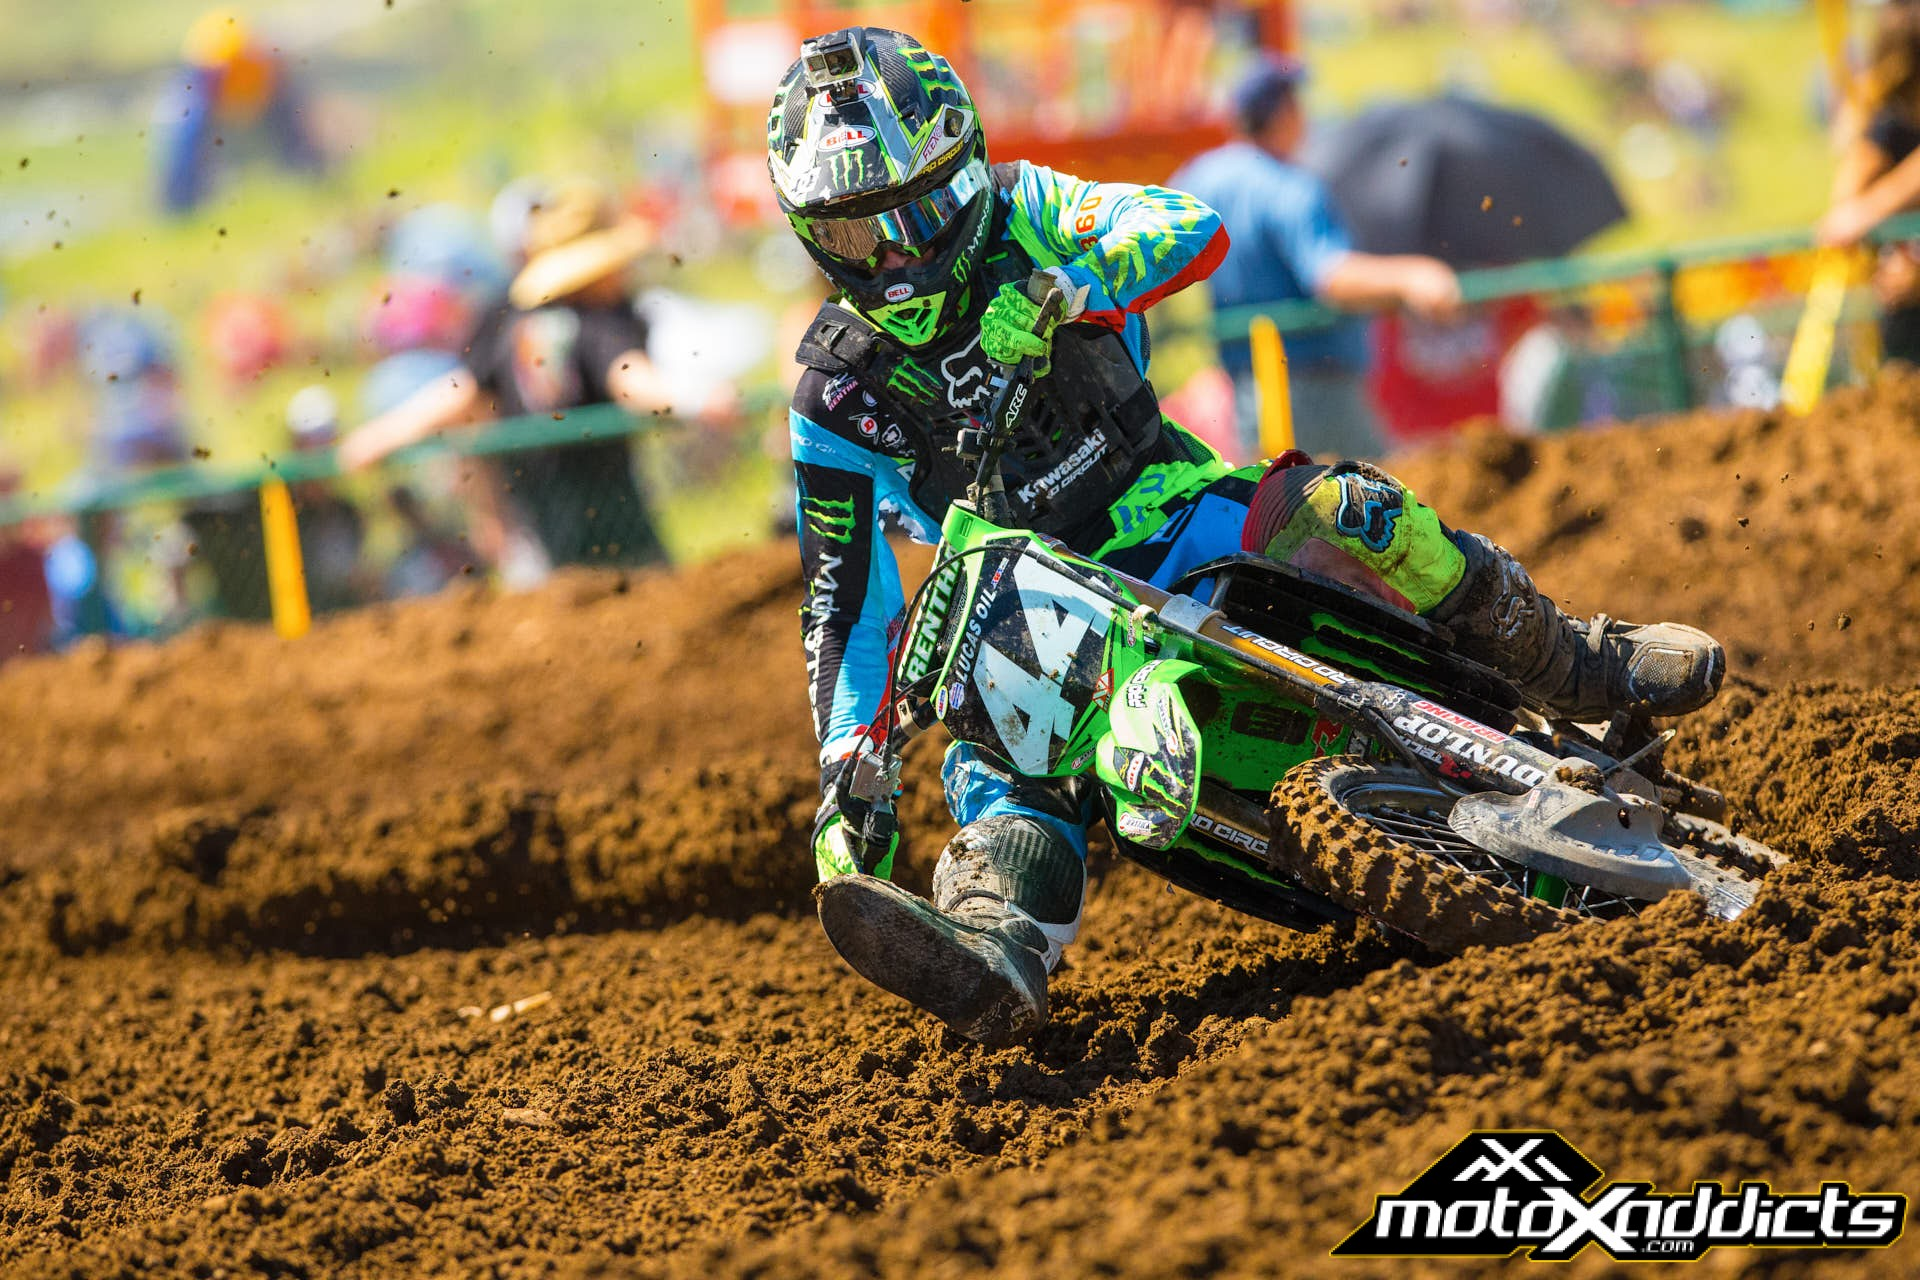 Truth Wallpapers With Quotes Motoxaddicts Photo Fix The Best Of 2016 Motocross